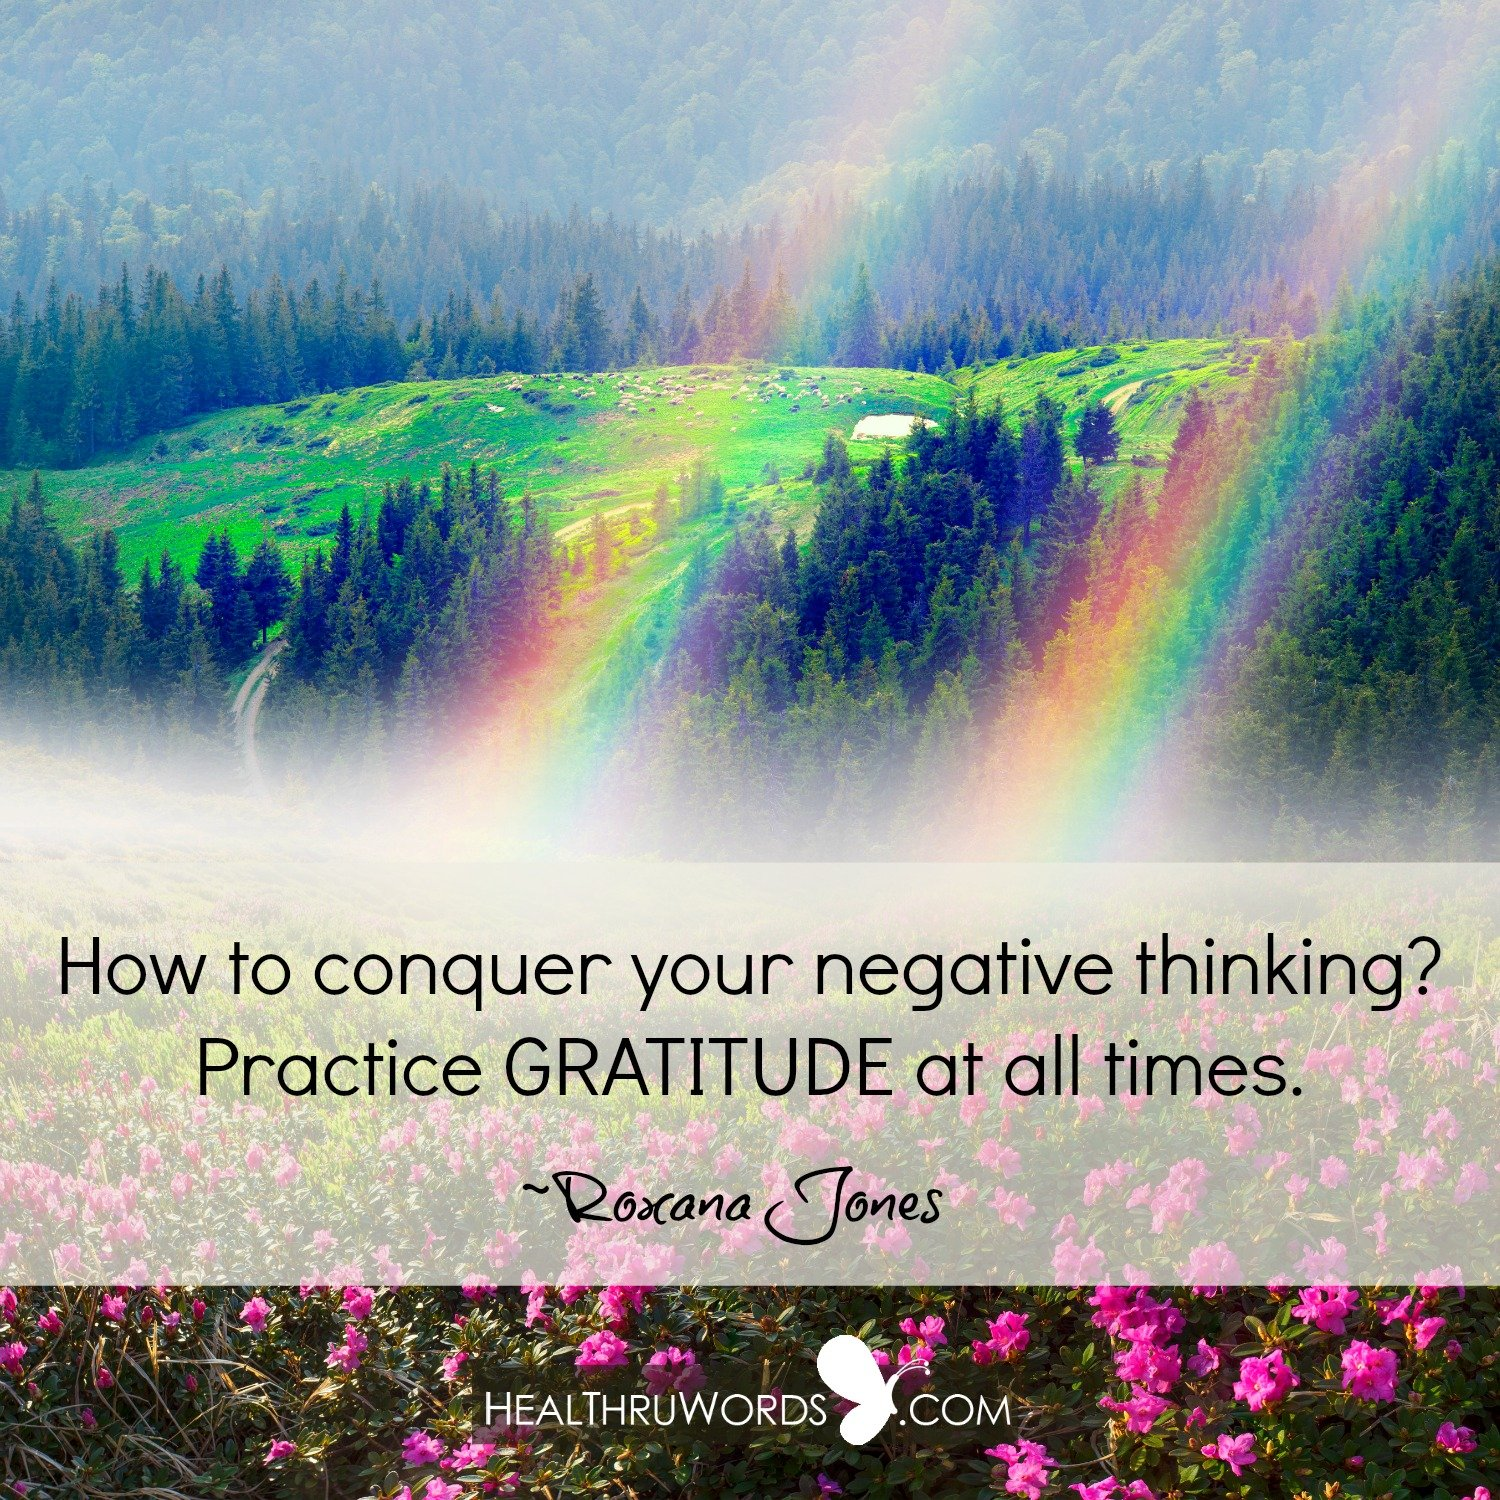 Inspirational Image: The Best Remedy for Negativity